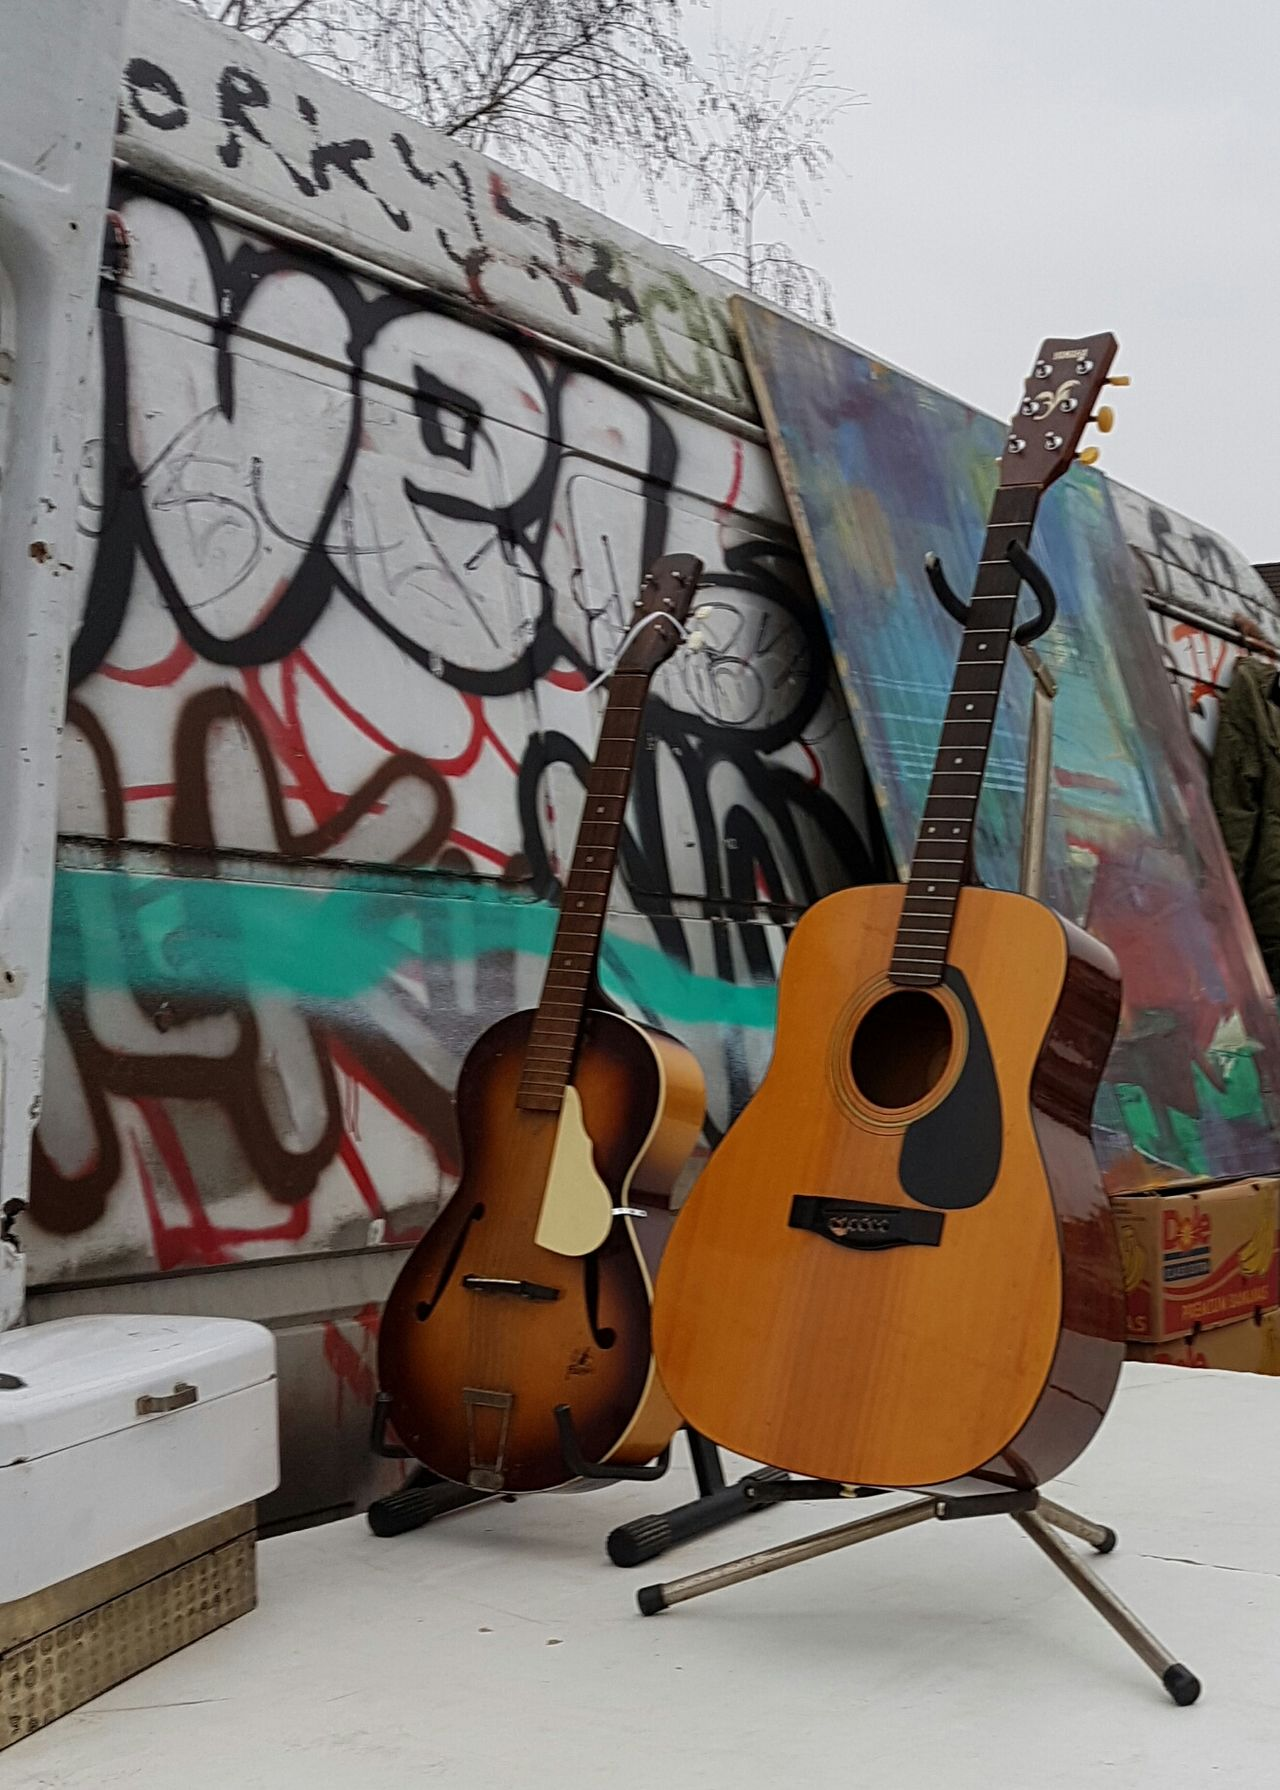 Guitar Musical Instrument Old Guitar For Sale Cover Second Hand Market Music Brocante Flea Market Fleamarkets Flea Markets Fleamarket Market Secondhand Background Second Hand